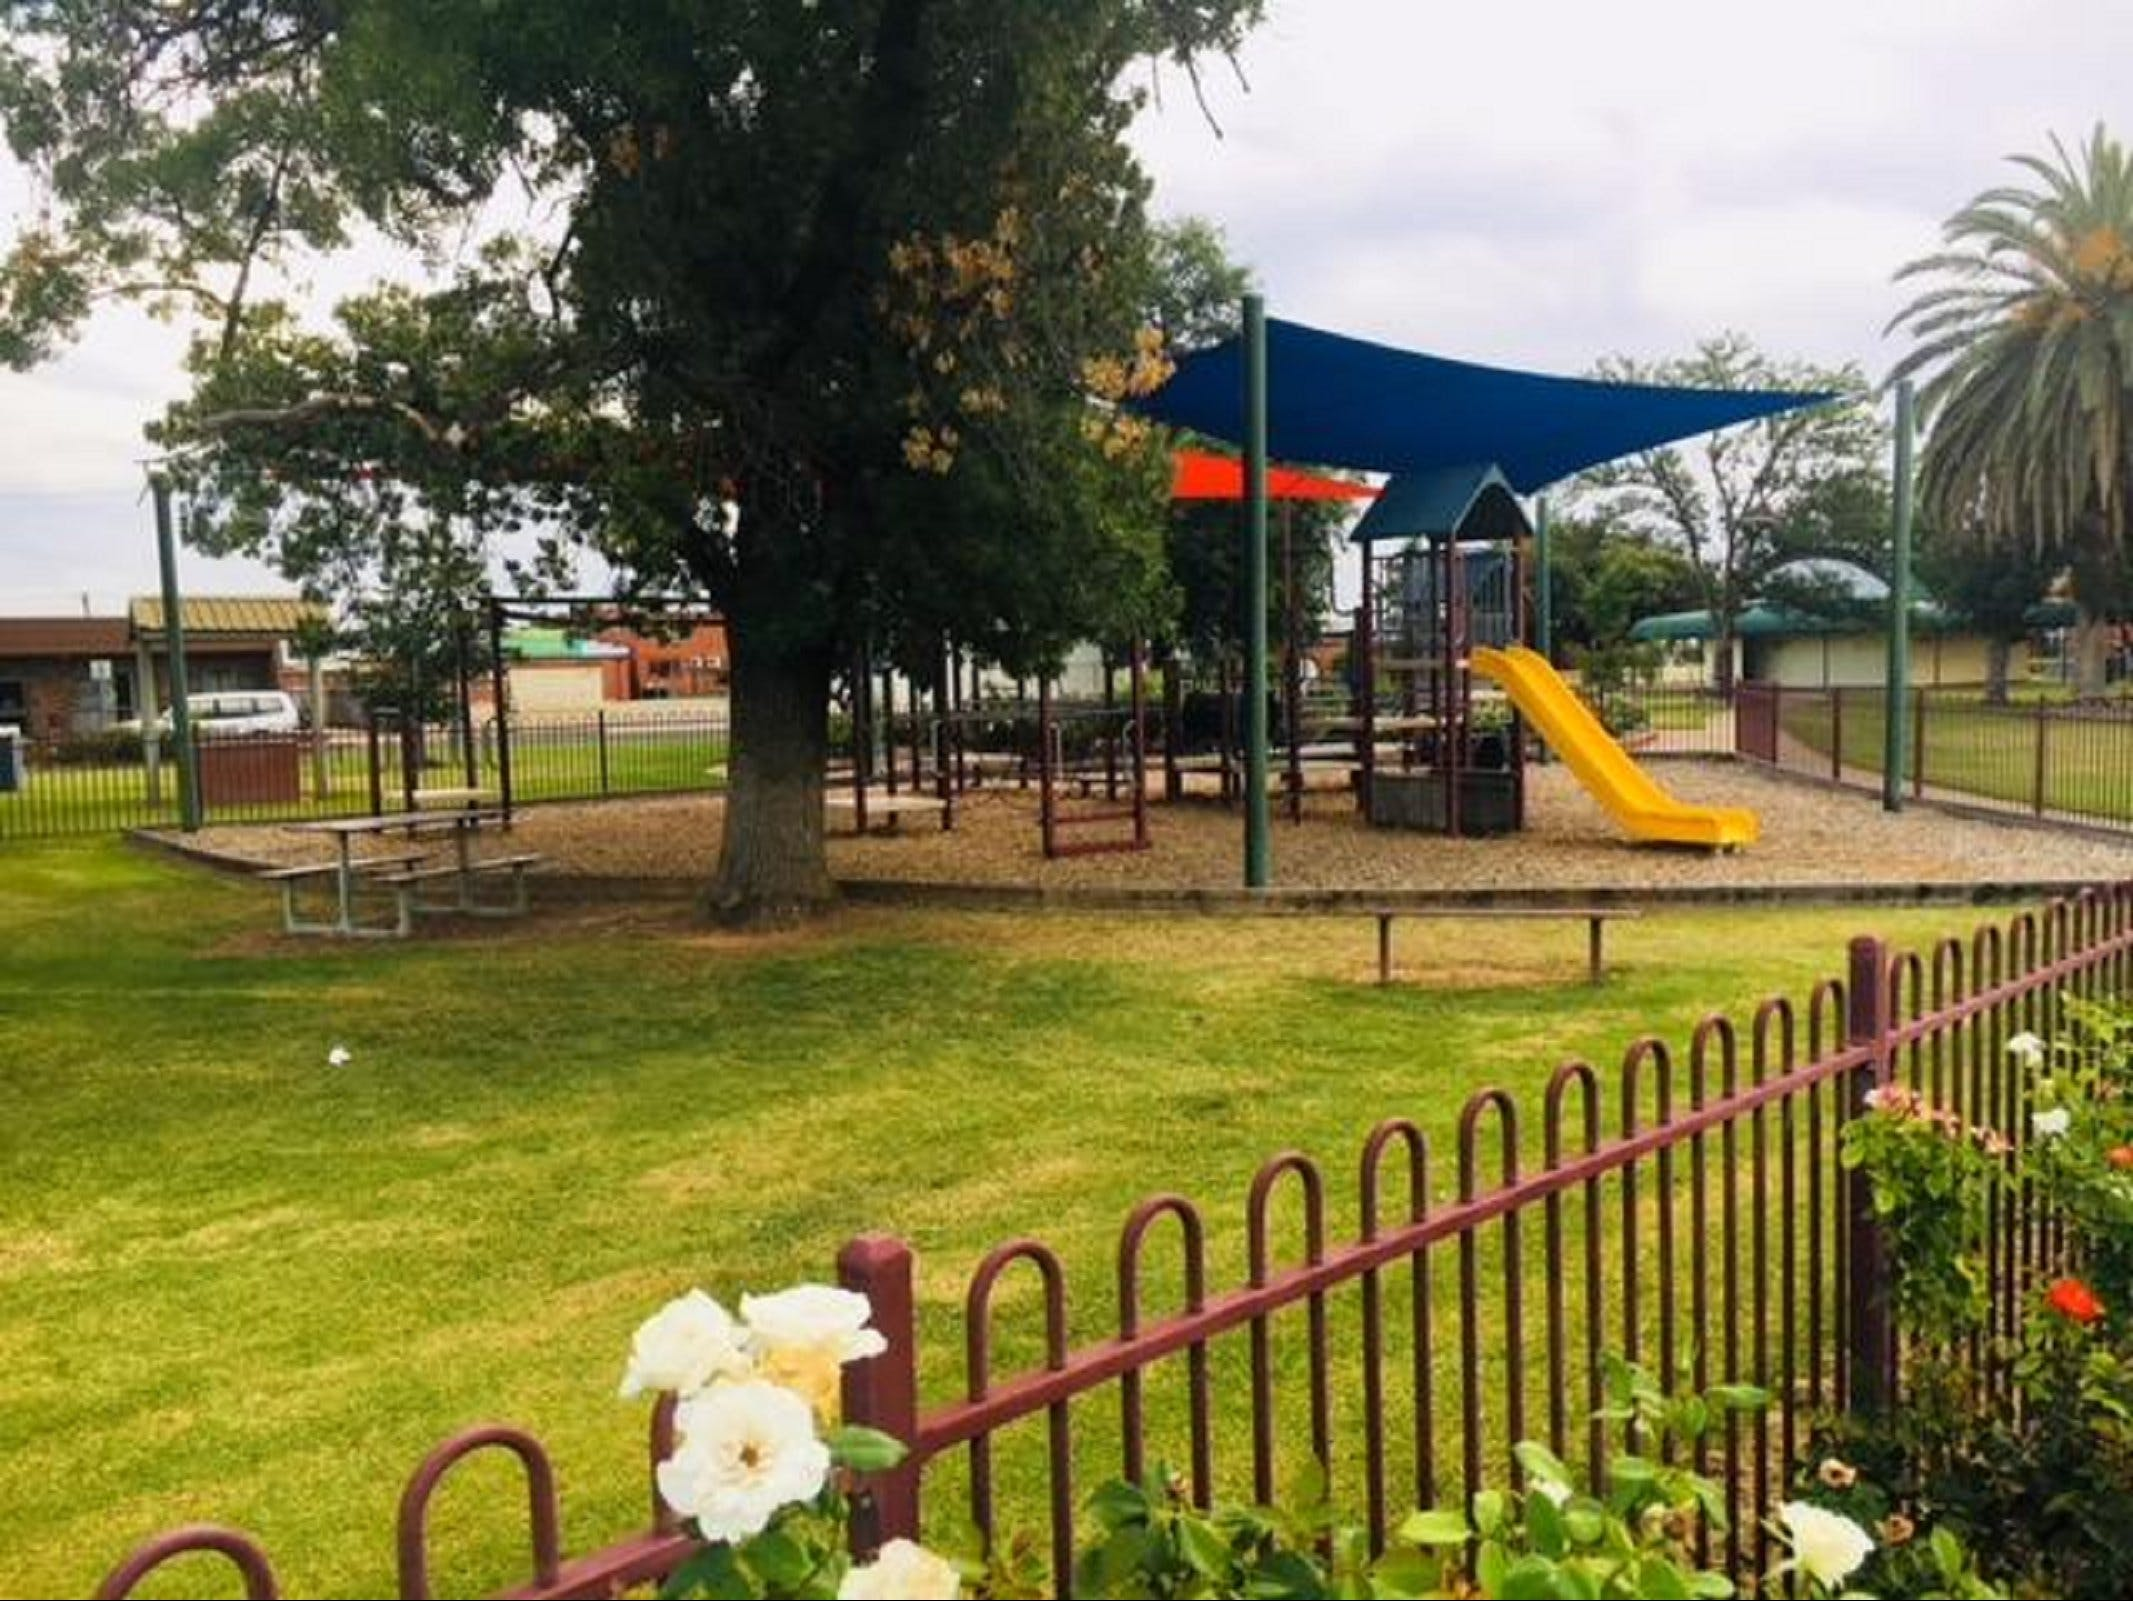 Cobram Mivo Park and Playground - Find Attractions